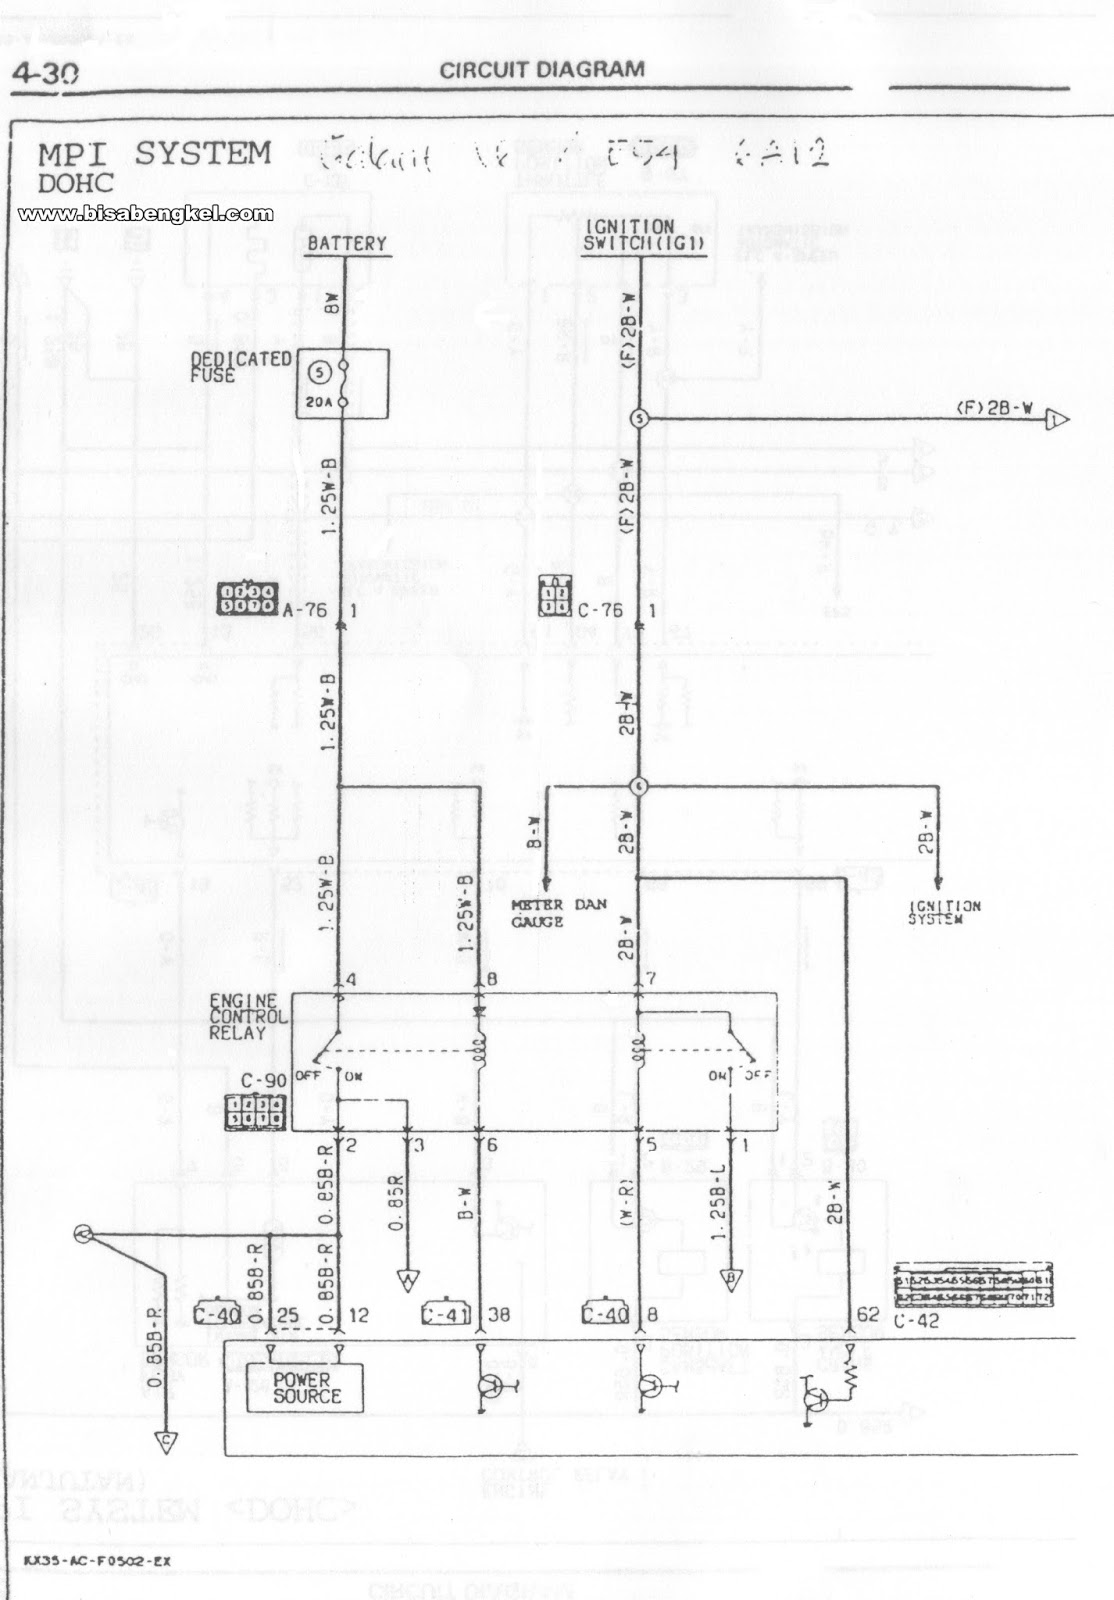 medium resolution of mitsubishi eterna v6 wiring diagram wiring diagram blogs rh 11 2 restaurant freinsheimer hof de mitsubishi eclipse wiring diagram 95 mitsubishi galant